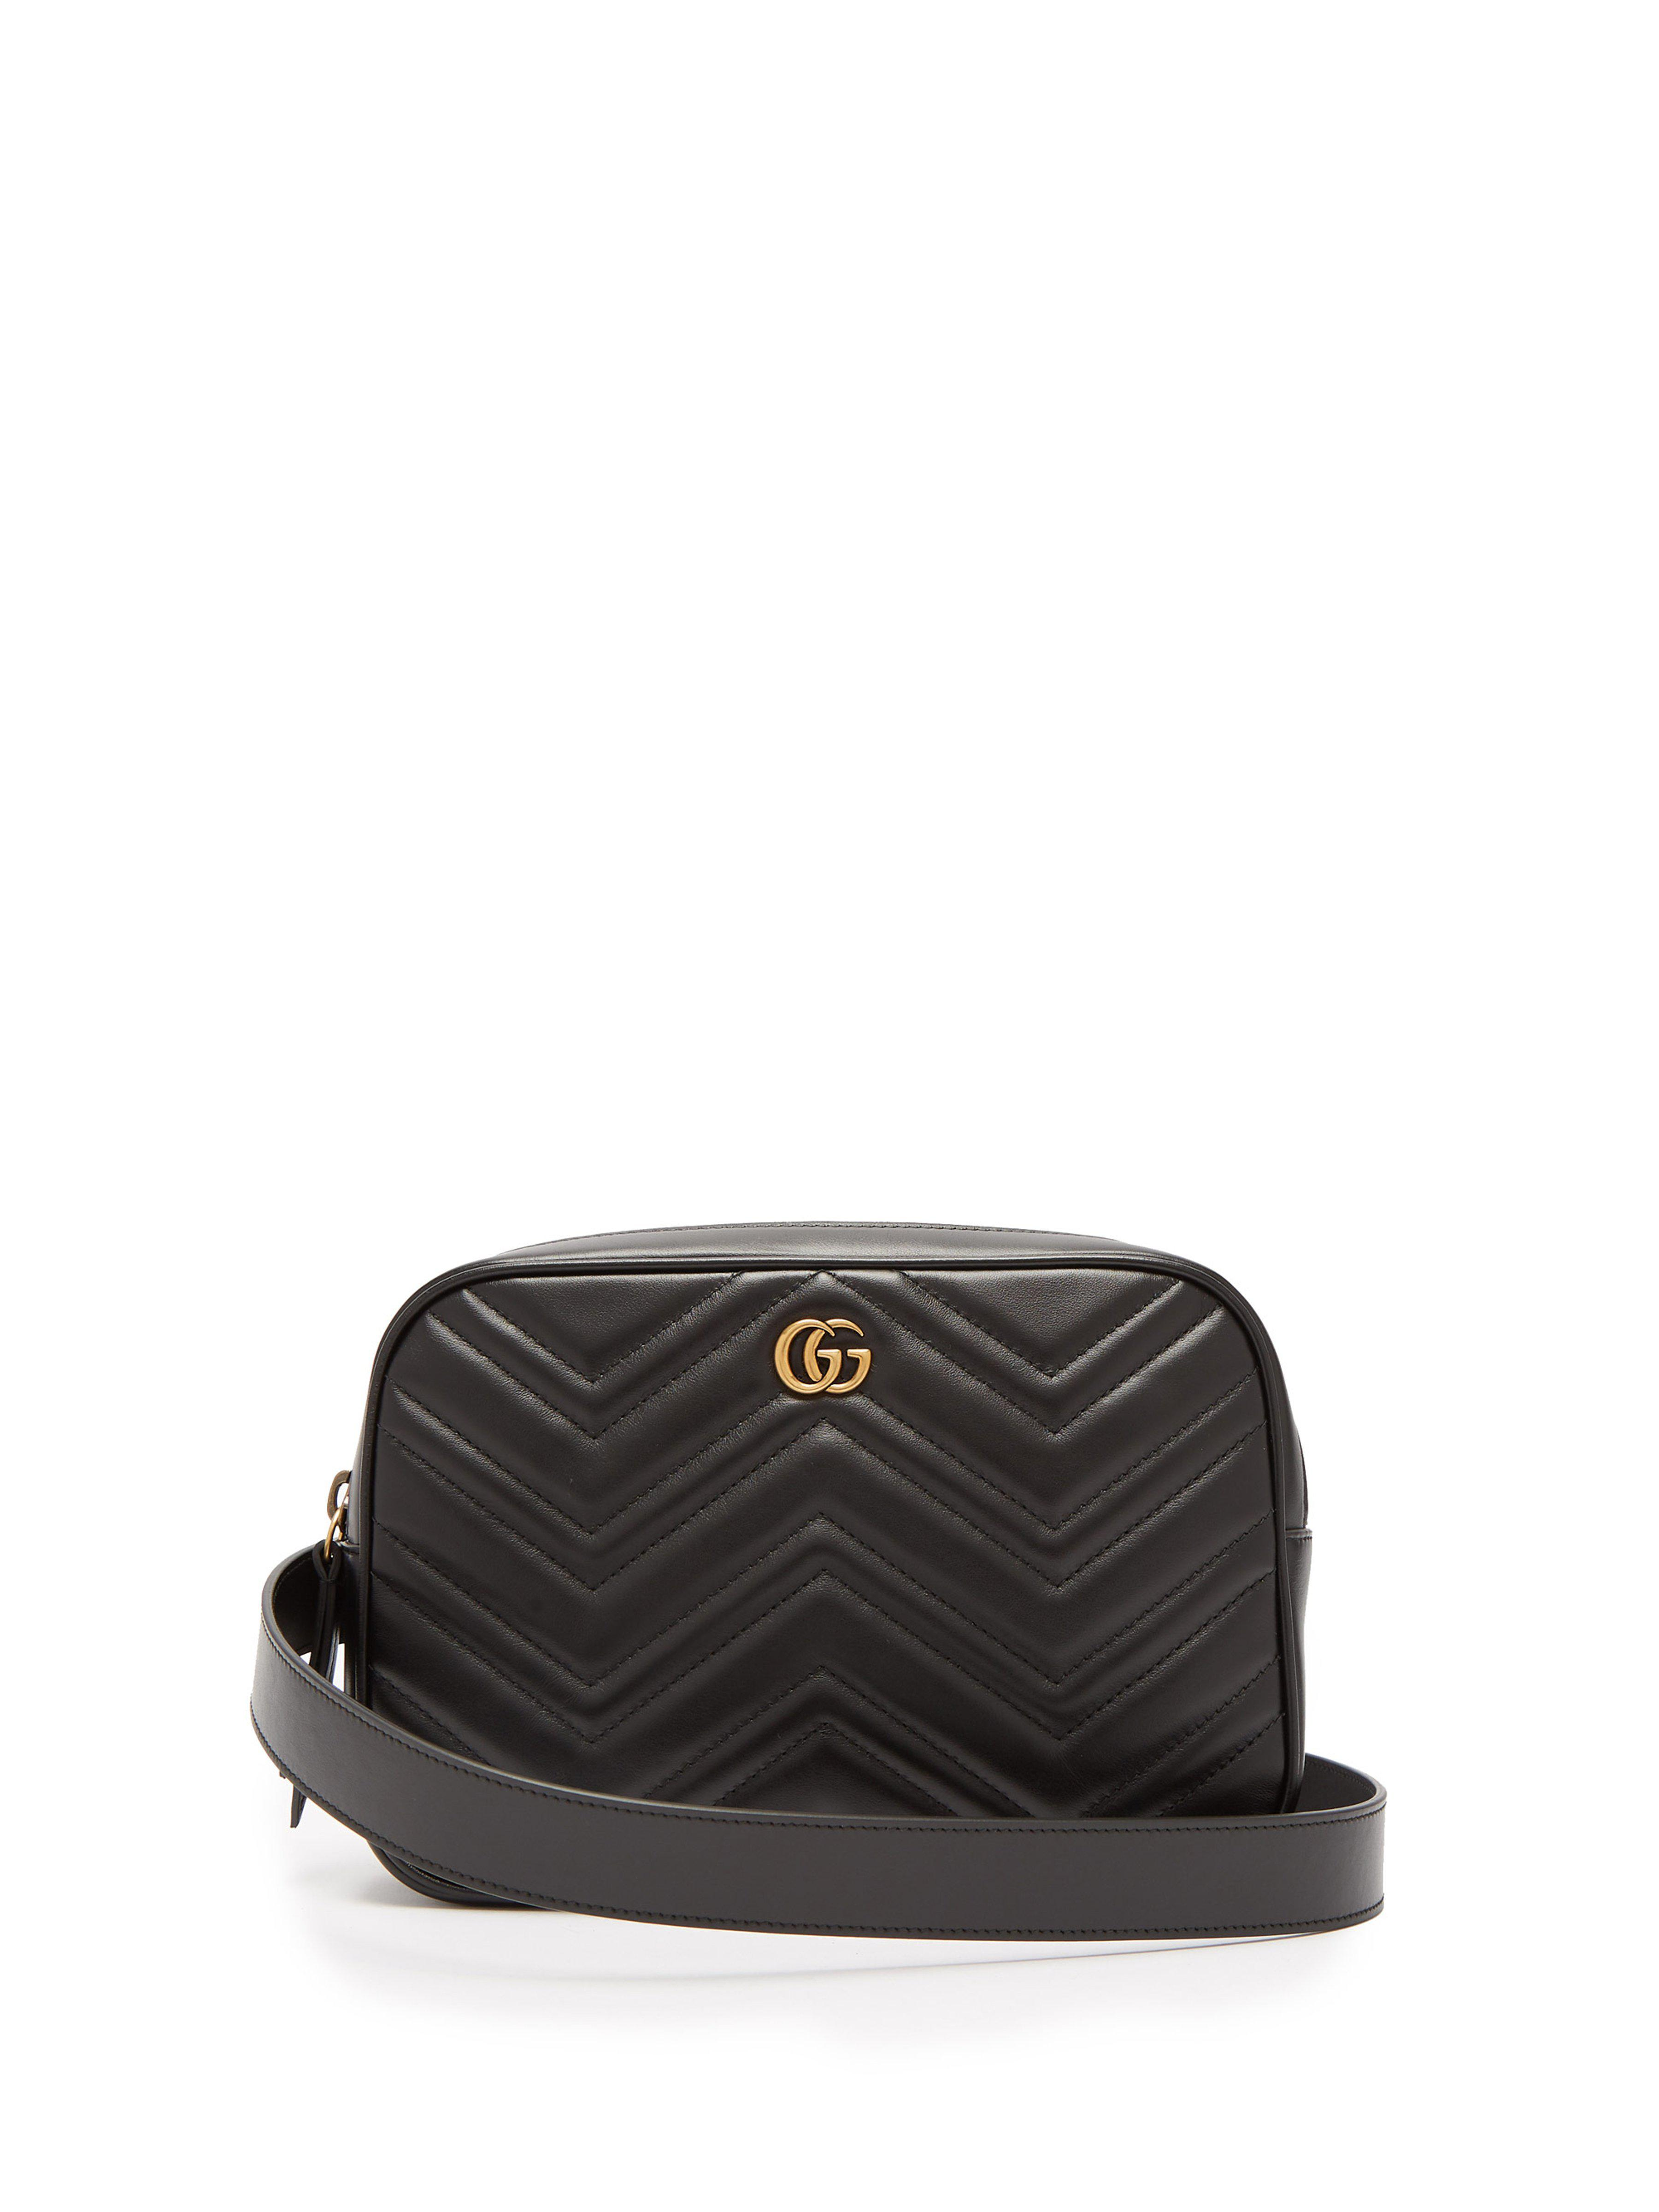 Gucci Gg Marmont Quilted Leather Belt Bag in Black for Men - Lyst 0285271cb790d